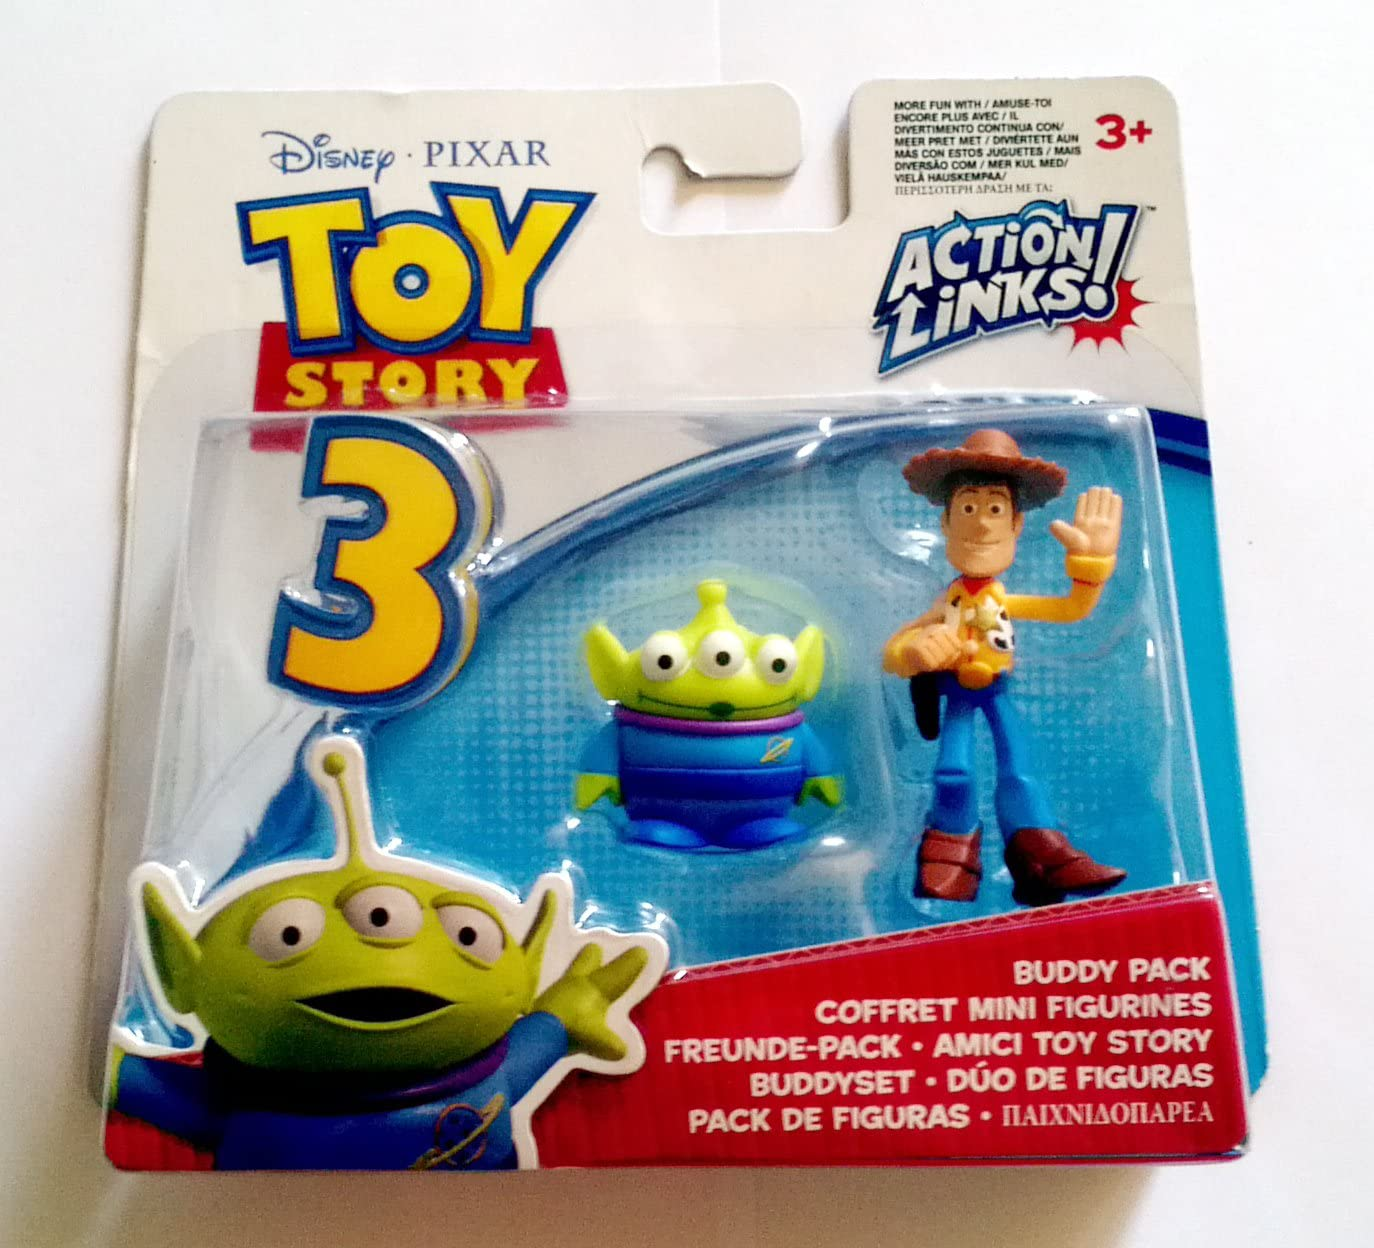 Disney / Pixar Toy Story 3 Action Links Mini Figure Buddy 2Pack ...